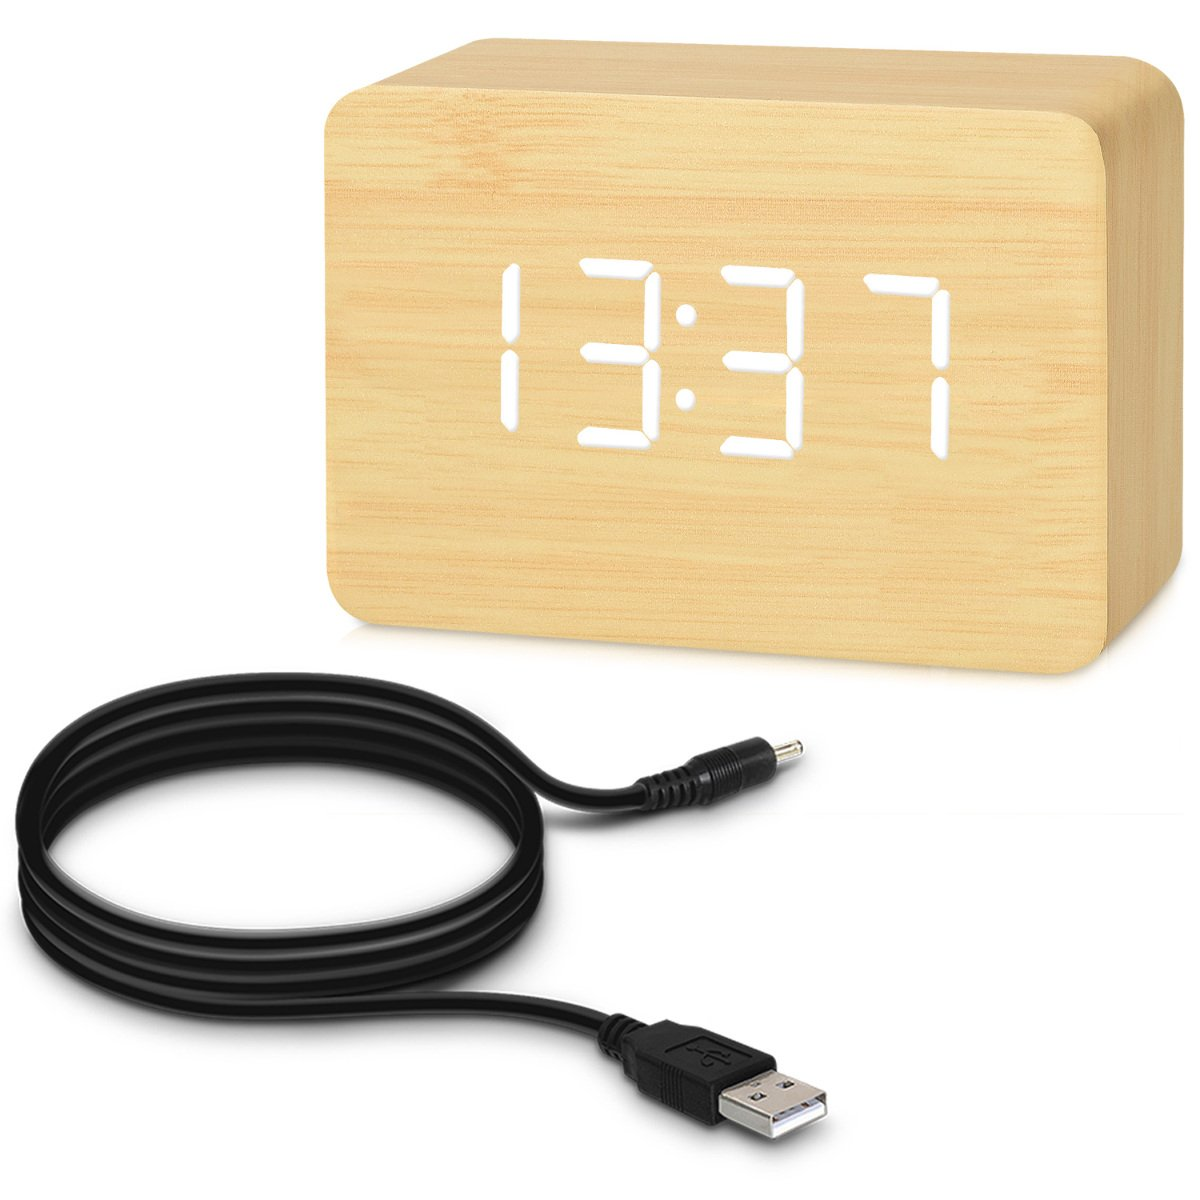 kwmobile Digital Wood Alarm Clock Black with White LED Small LED Bedside Wooden Clock with Temperature and Date Display USB and Battery Powered